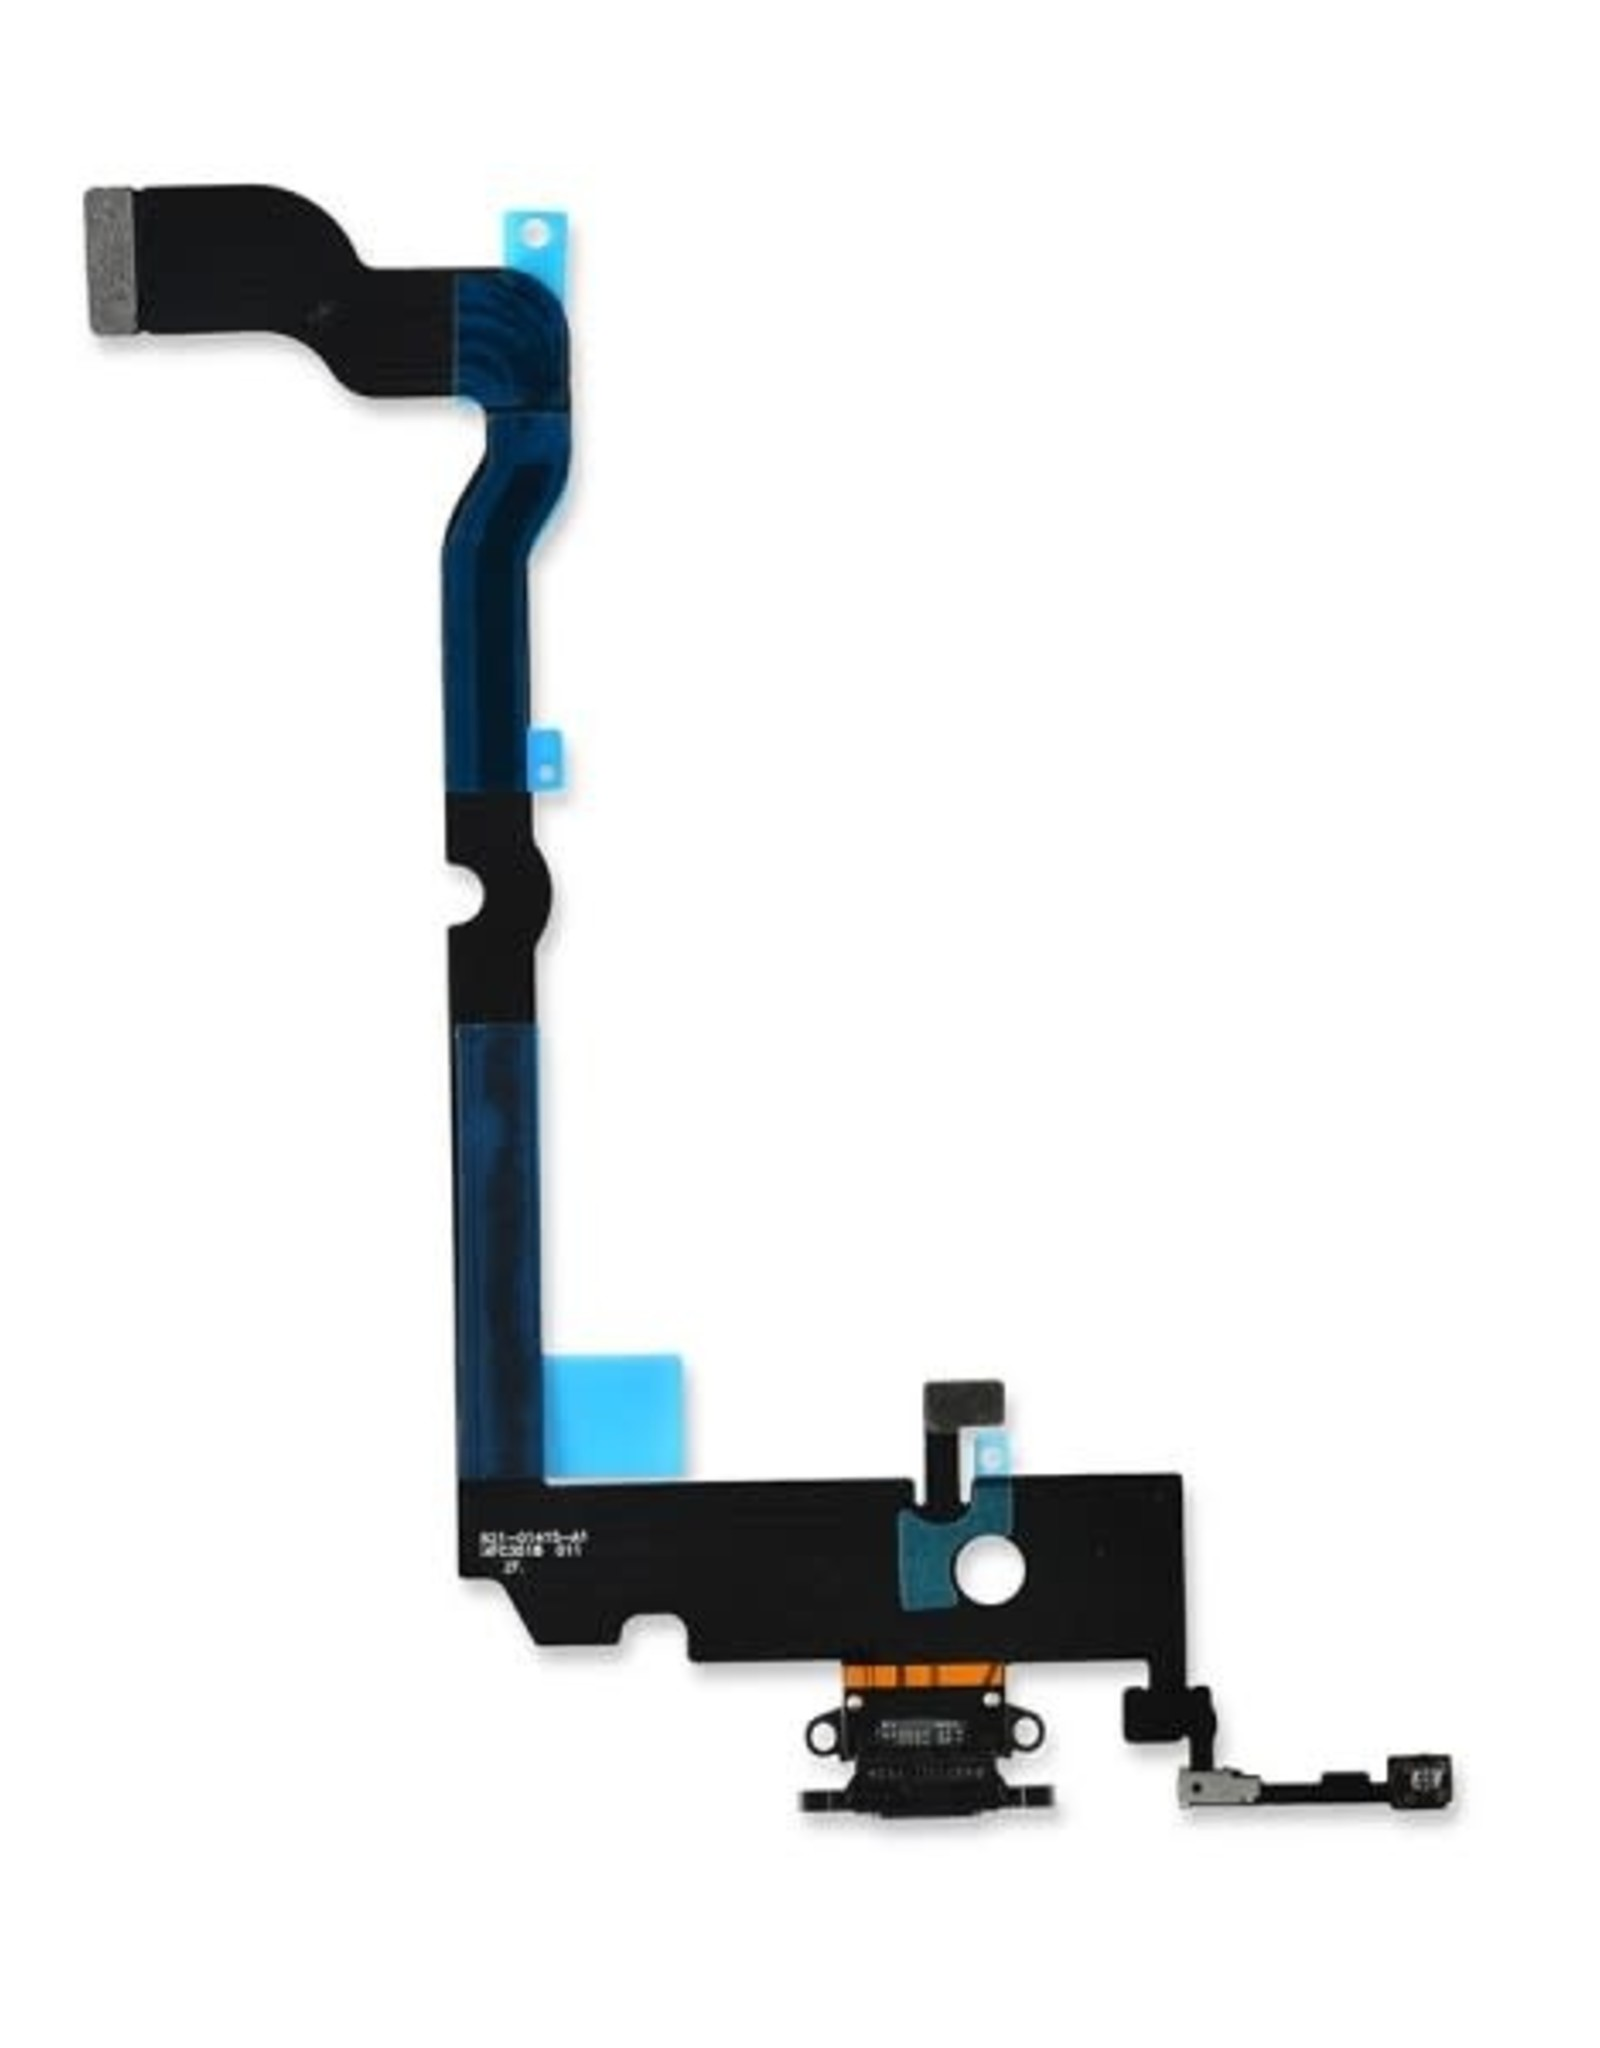 Apple iPhone Charging Port USB Dock Connector Flex Cable Assembly Replacement for iPhone XS max(Space Grey)